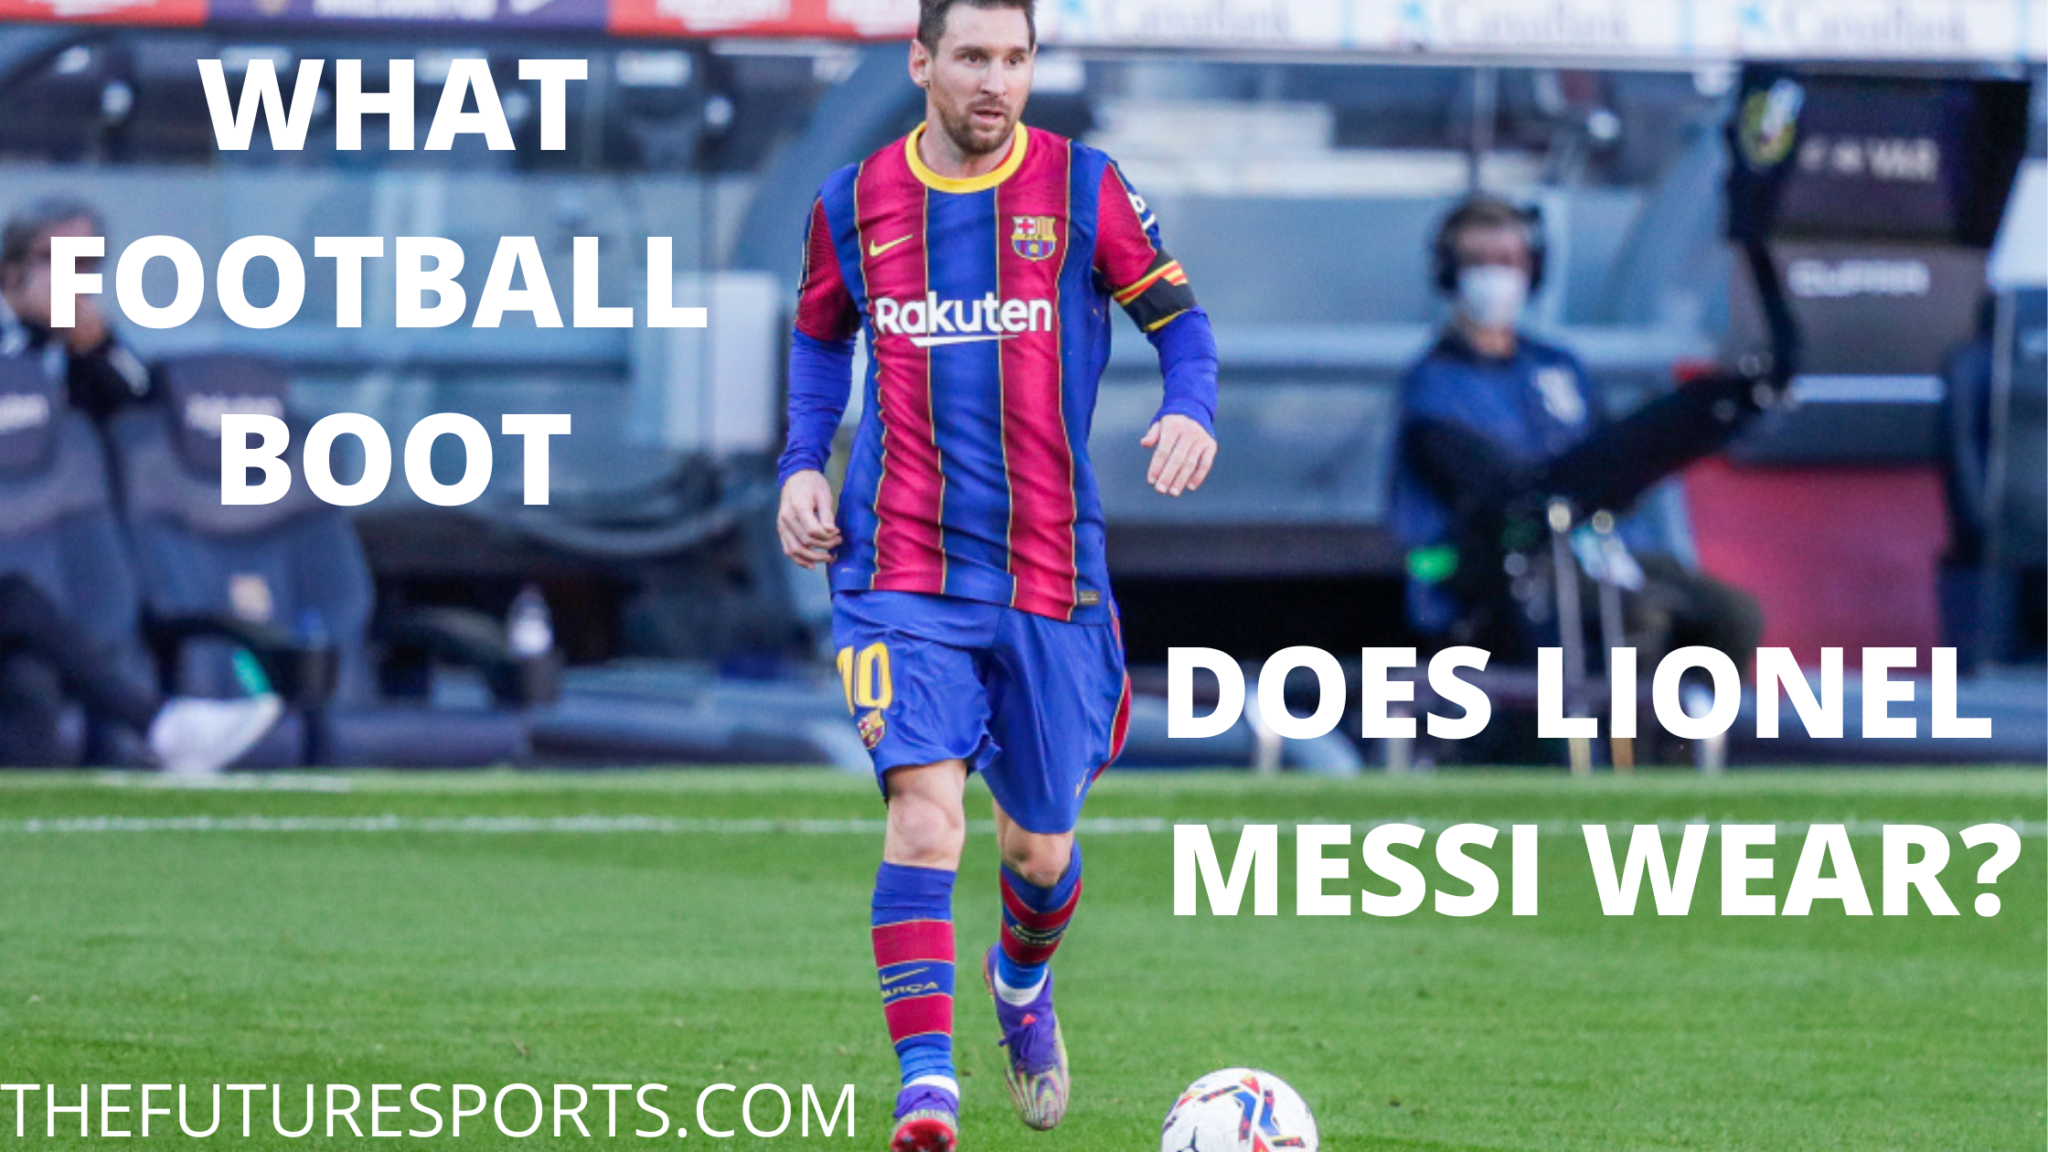 What football boots does lionel Messi wear